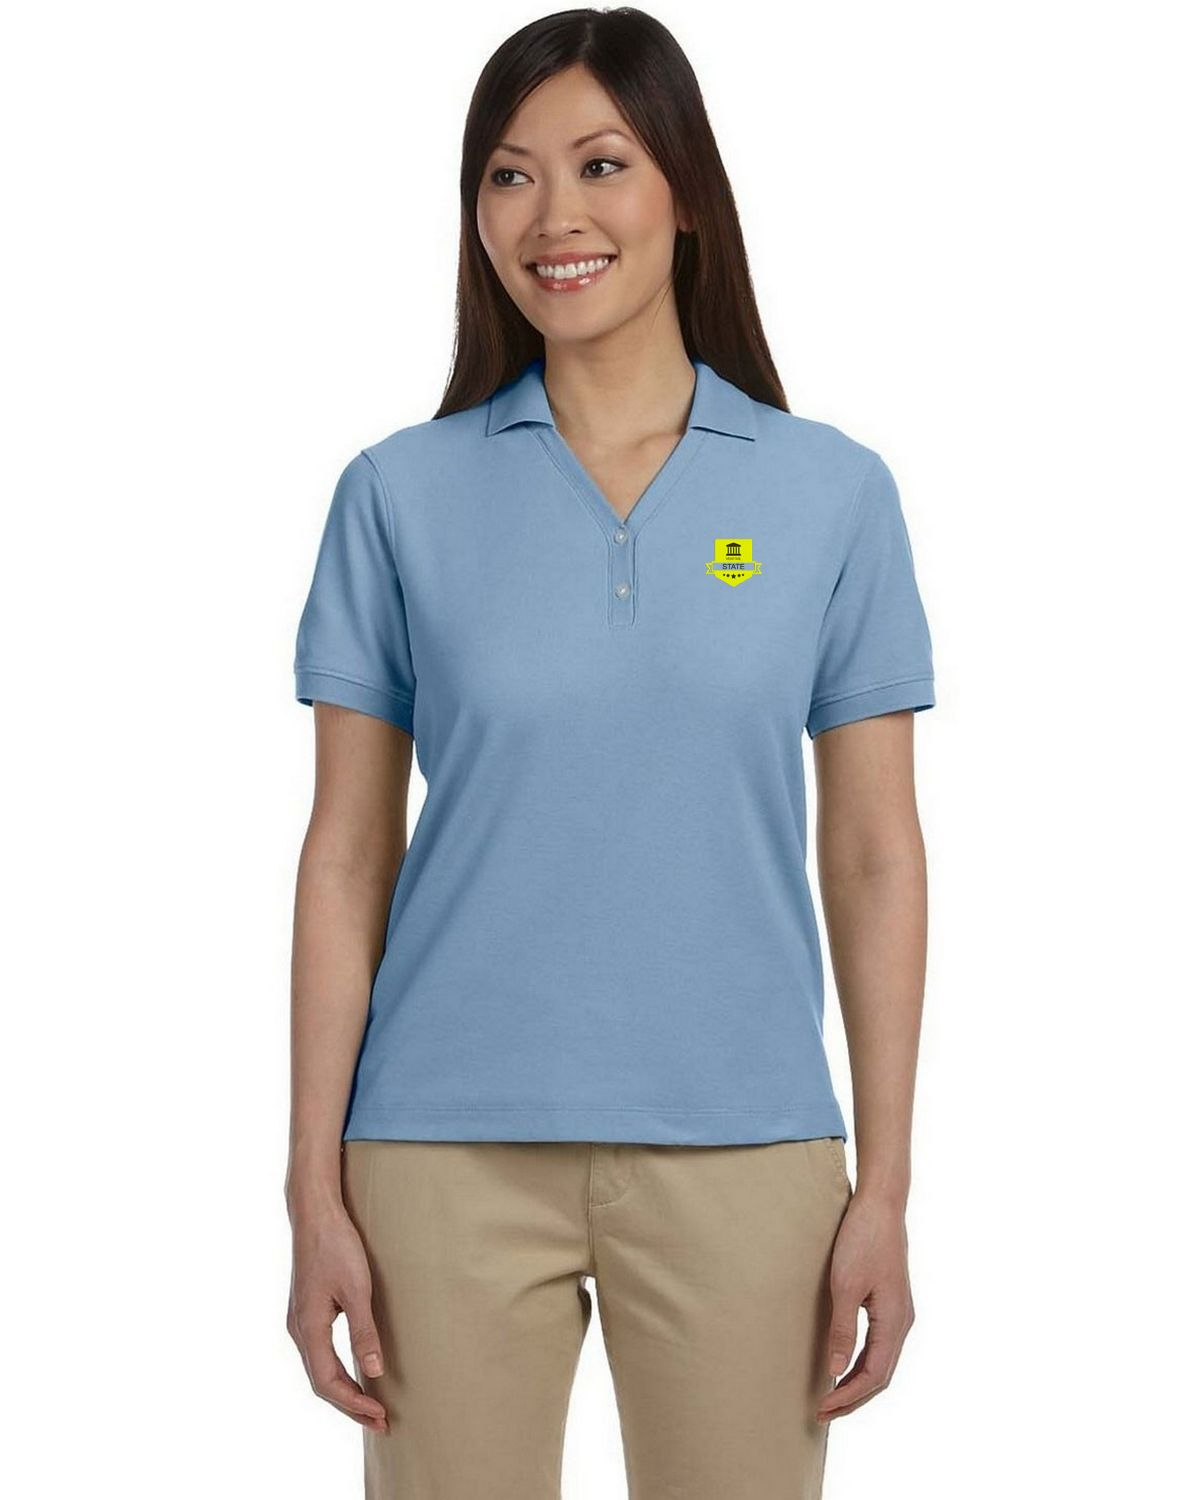 ... LIGHT BLUE Devon /& Jones Ladies Pima Piqu Short-Sleeve Polo